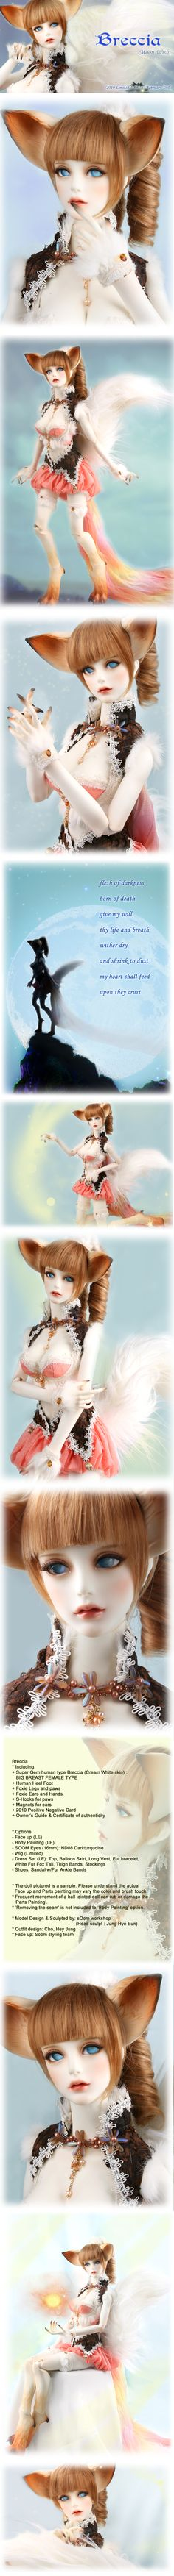 soom Breccia human version [Breccia] - $199.00 : BJD baby,bjd dolls,bjd doll shop,bjd bragan?a,fairyland,volks bjd,soom,luts bjd,Super Dollfie, BJD lovers collect community